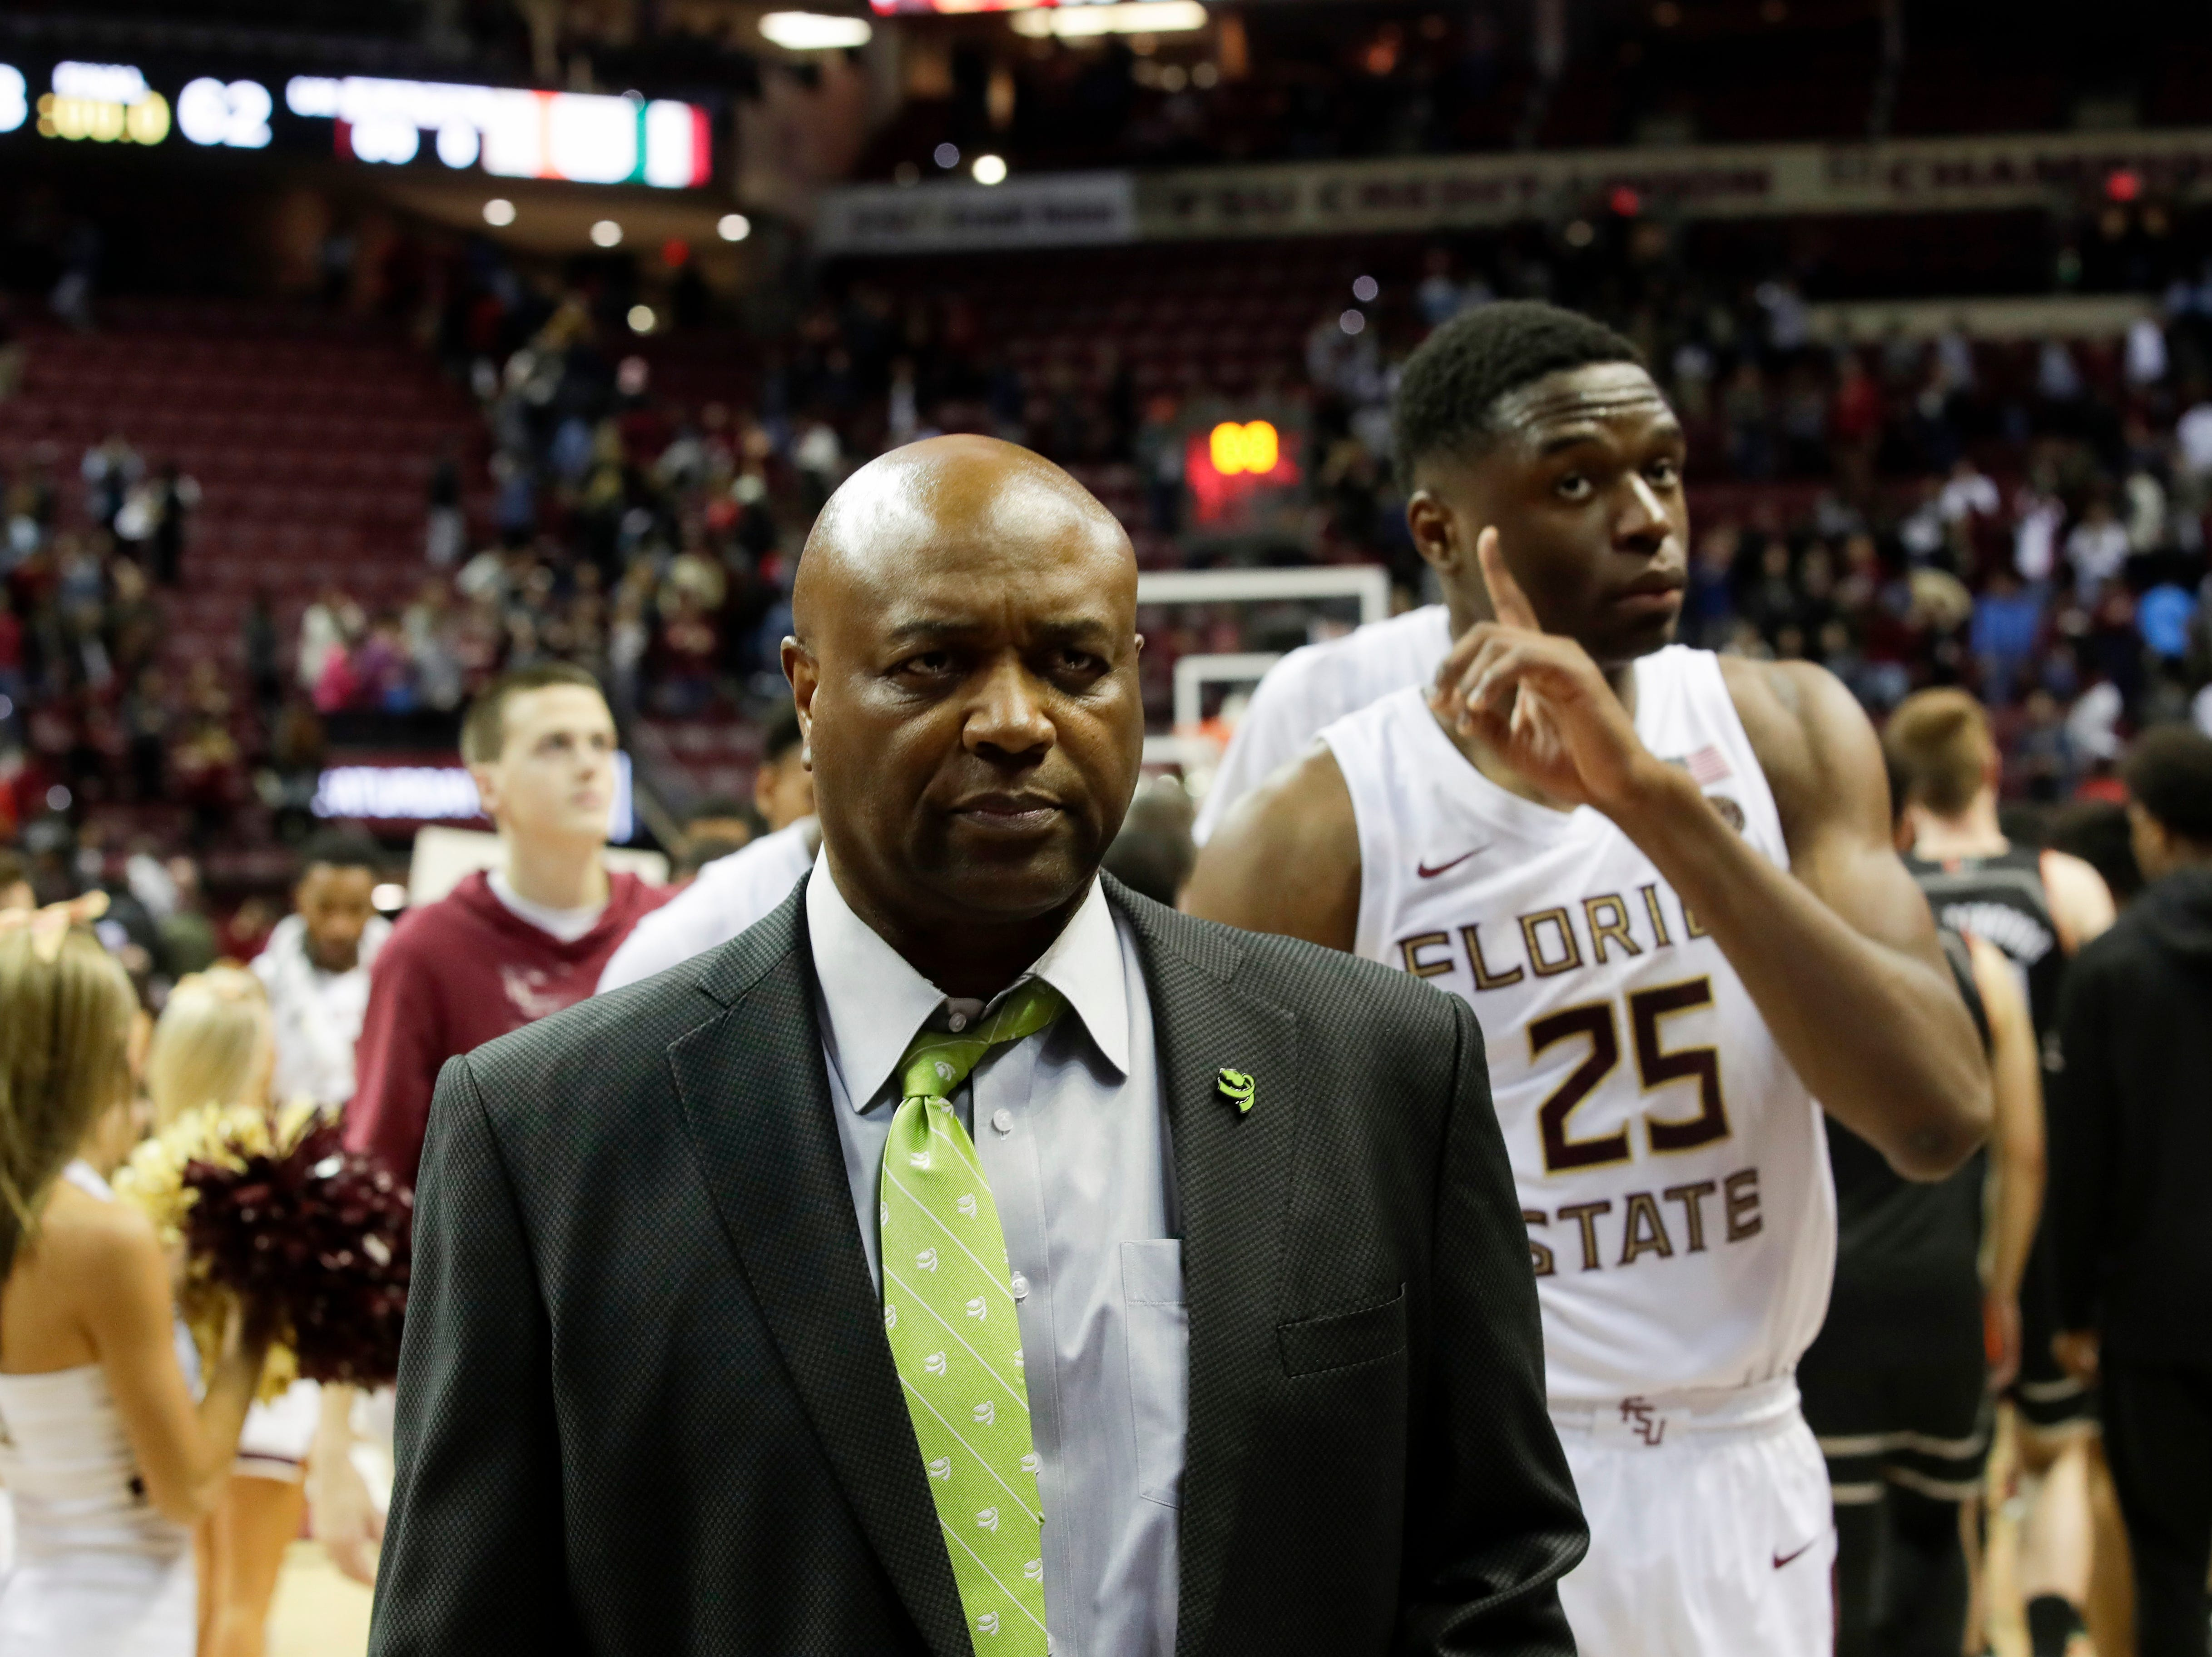 Leonard Hamilton leaves the court with his team after a win over University of Miami Wednesday, Jan. 9, 2019.